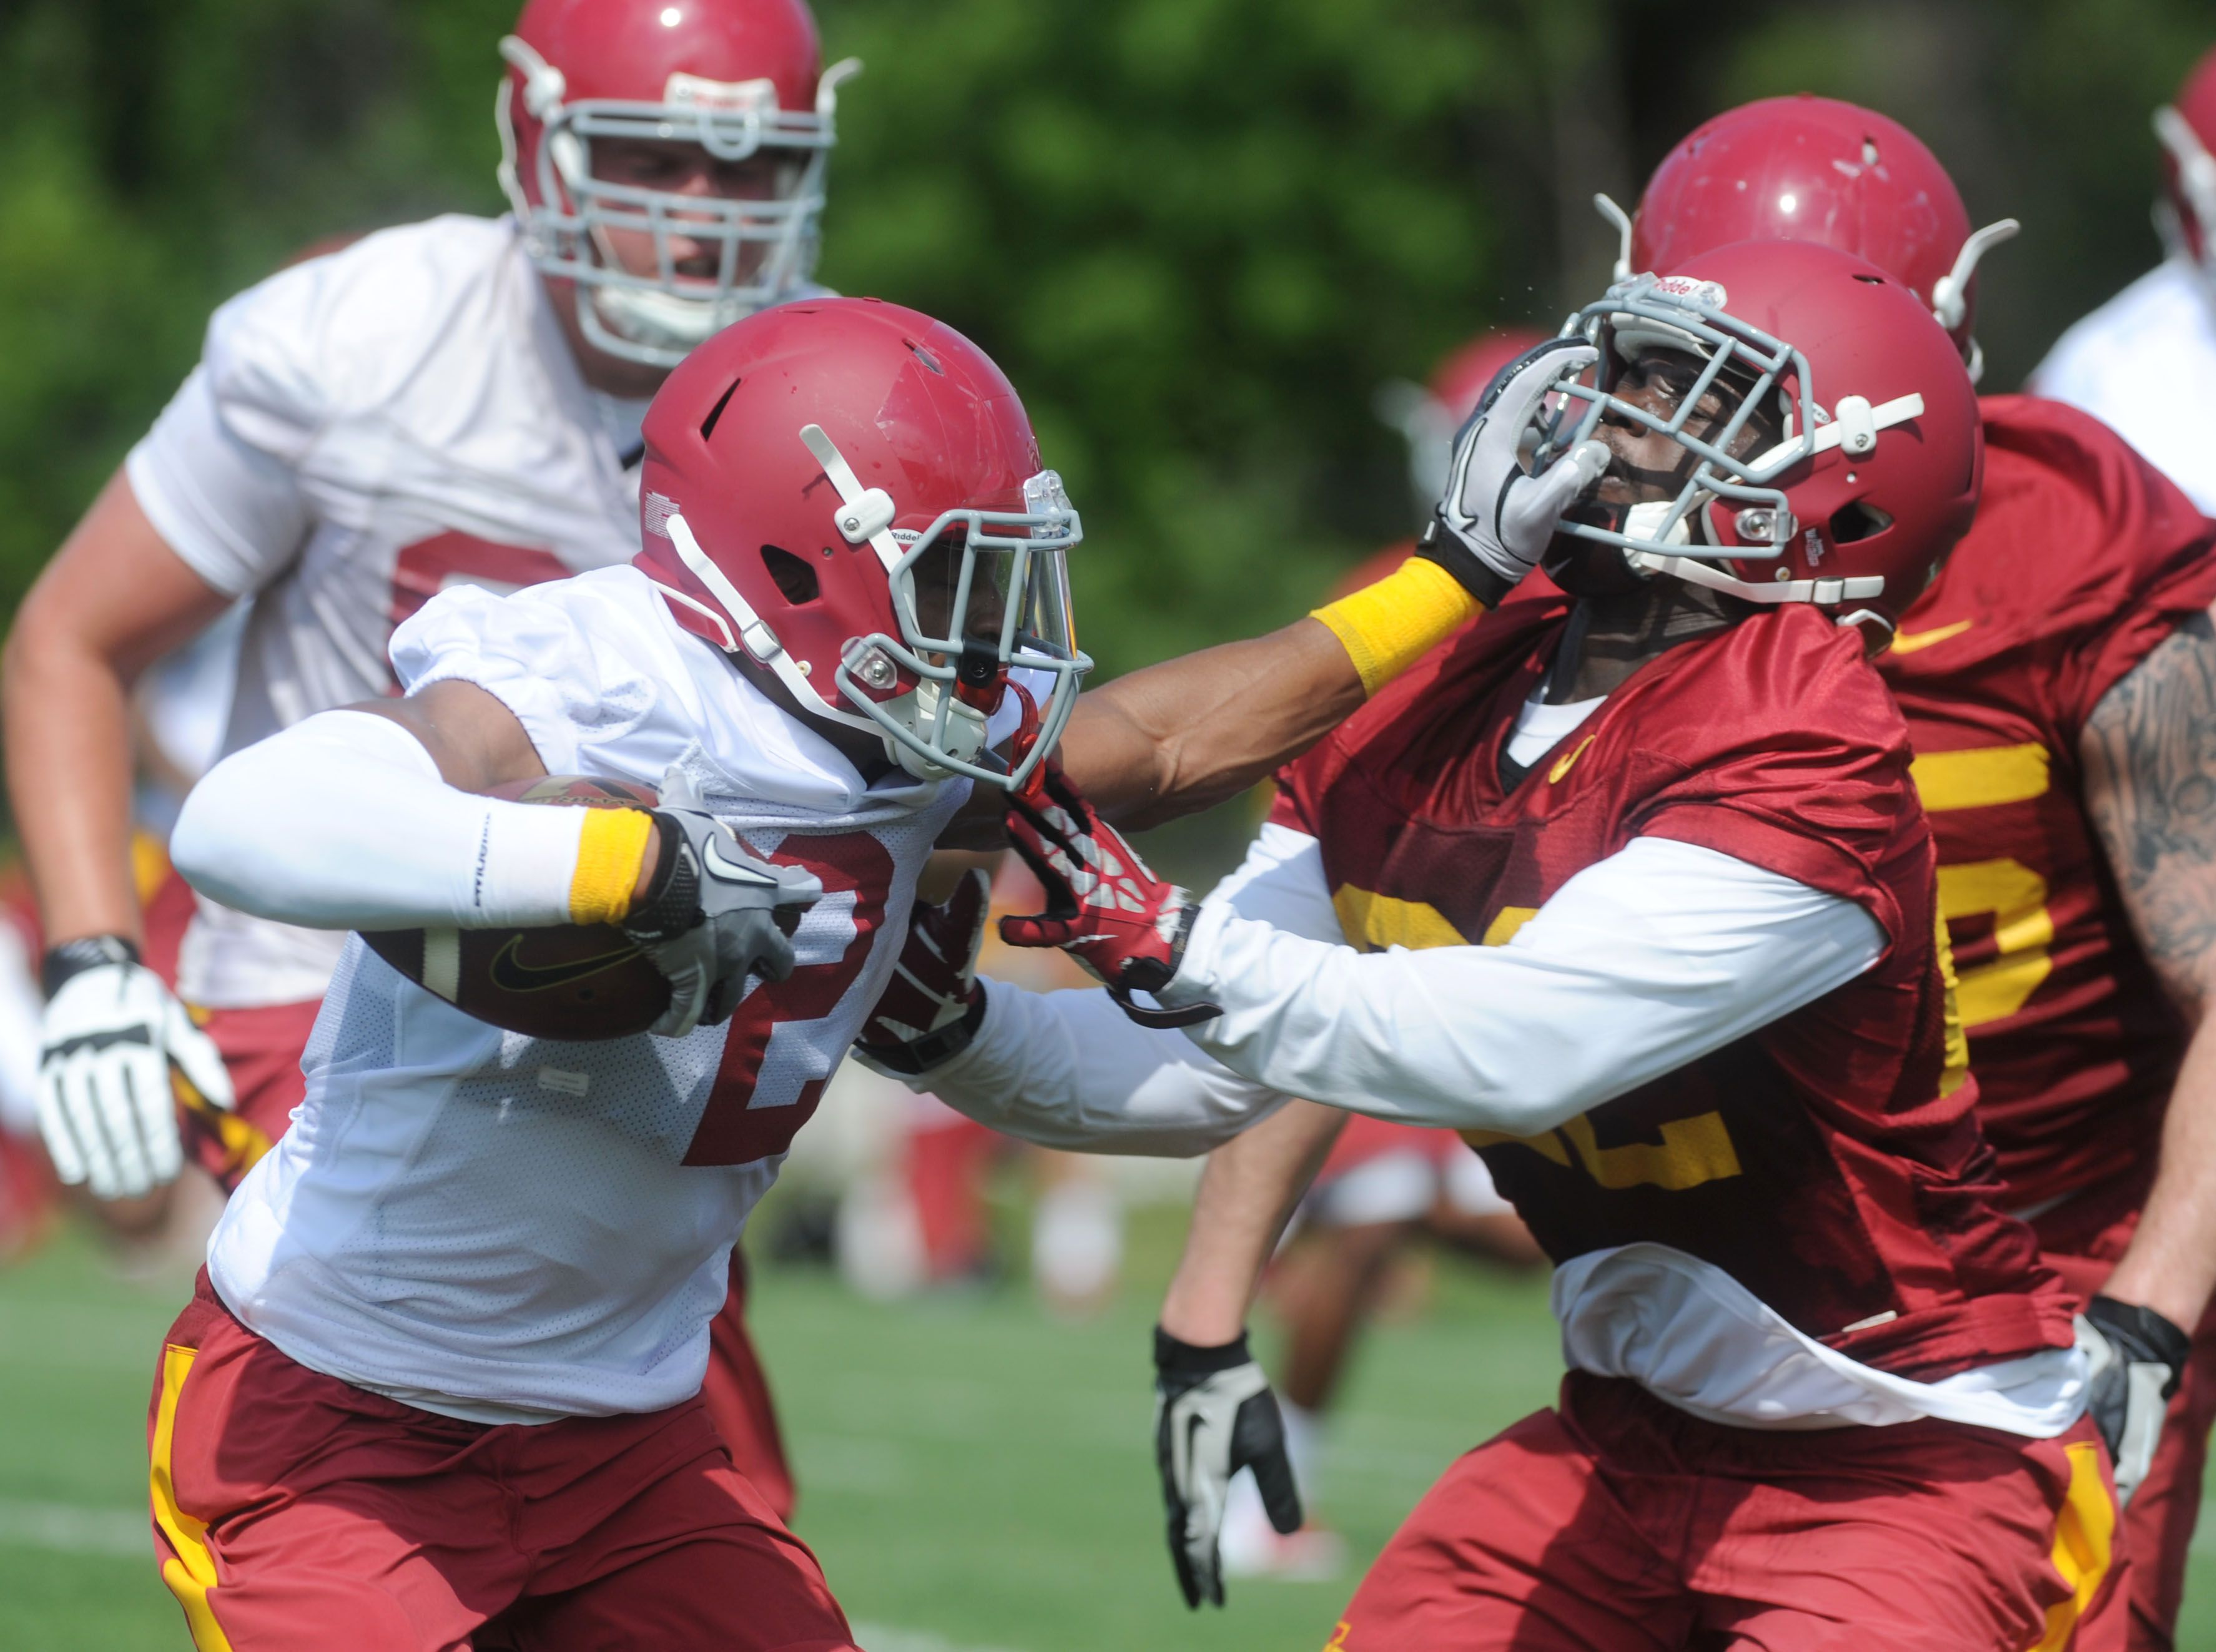 Iowa State Running Back Aaron Wimberly And Defensive Back T J Mutcherson Battle During The First Day Prac Iowa State Cyclones Football Helmets Defensive Back